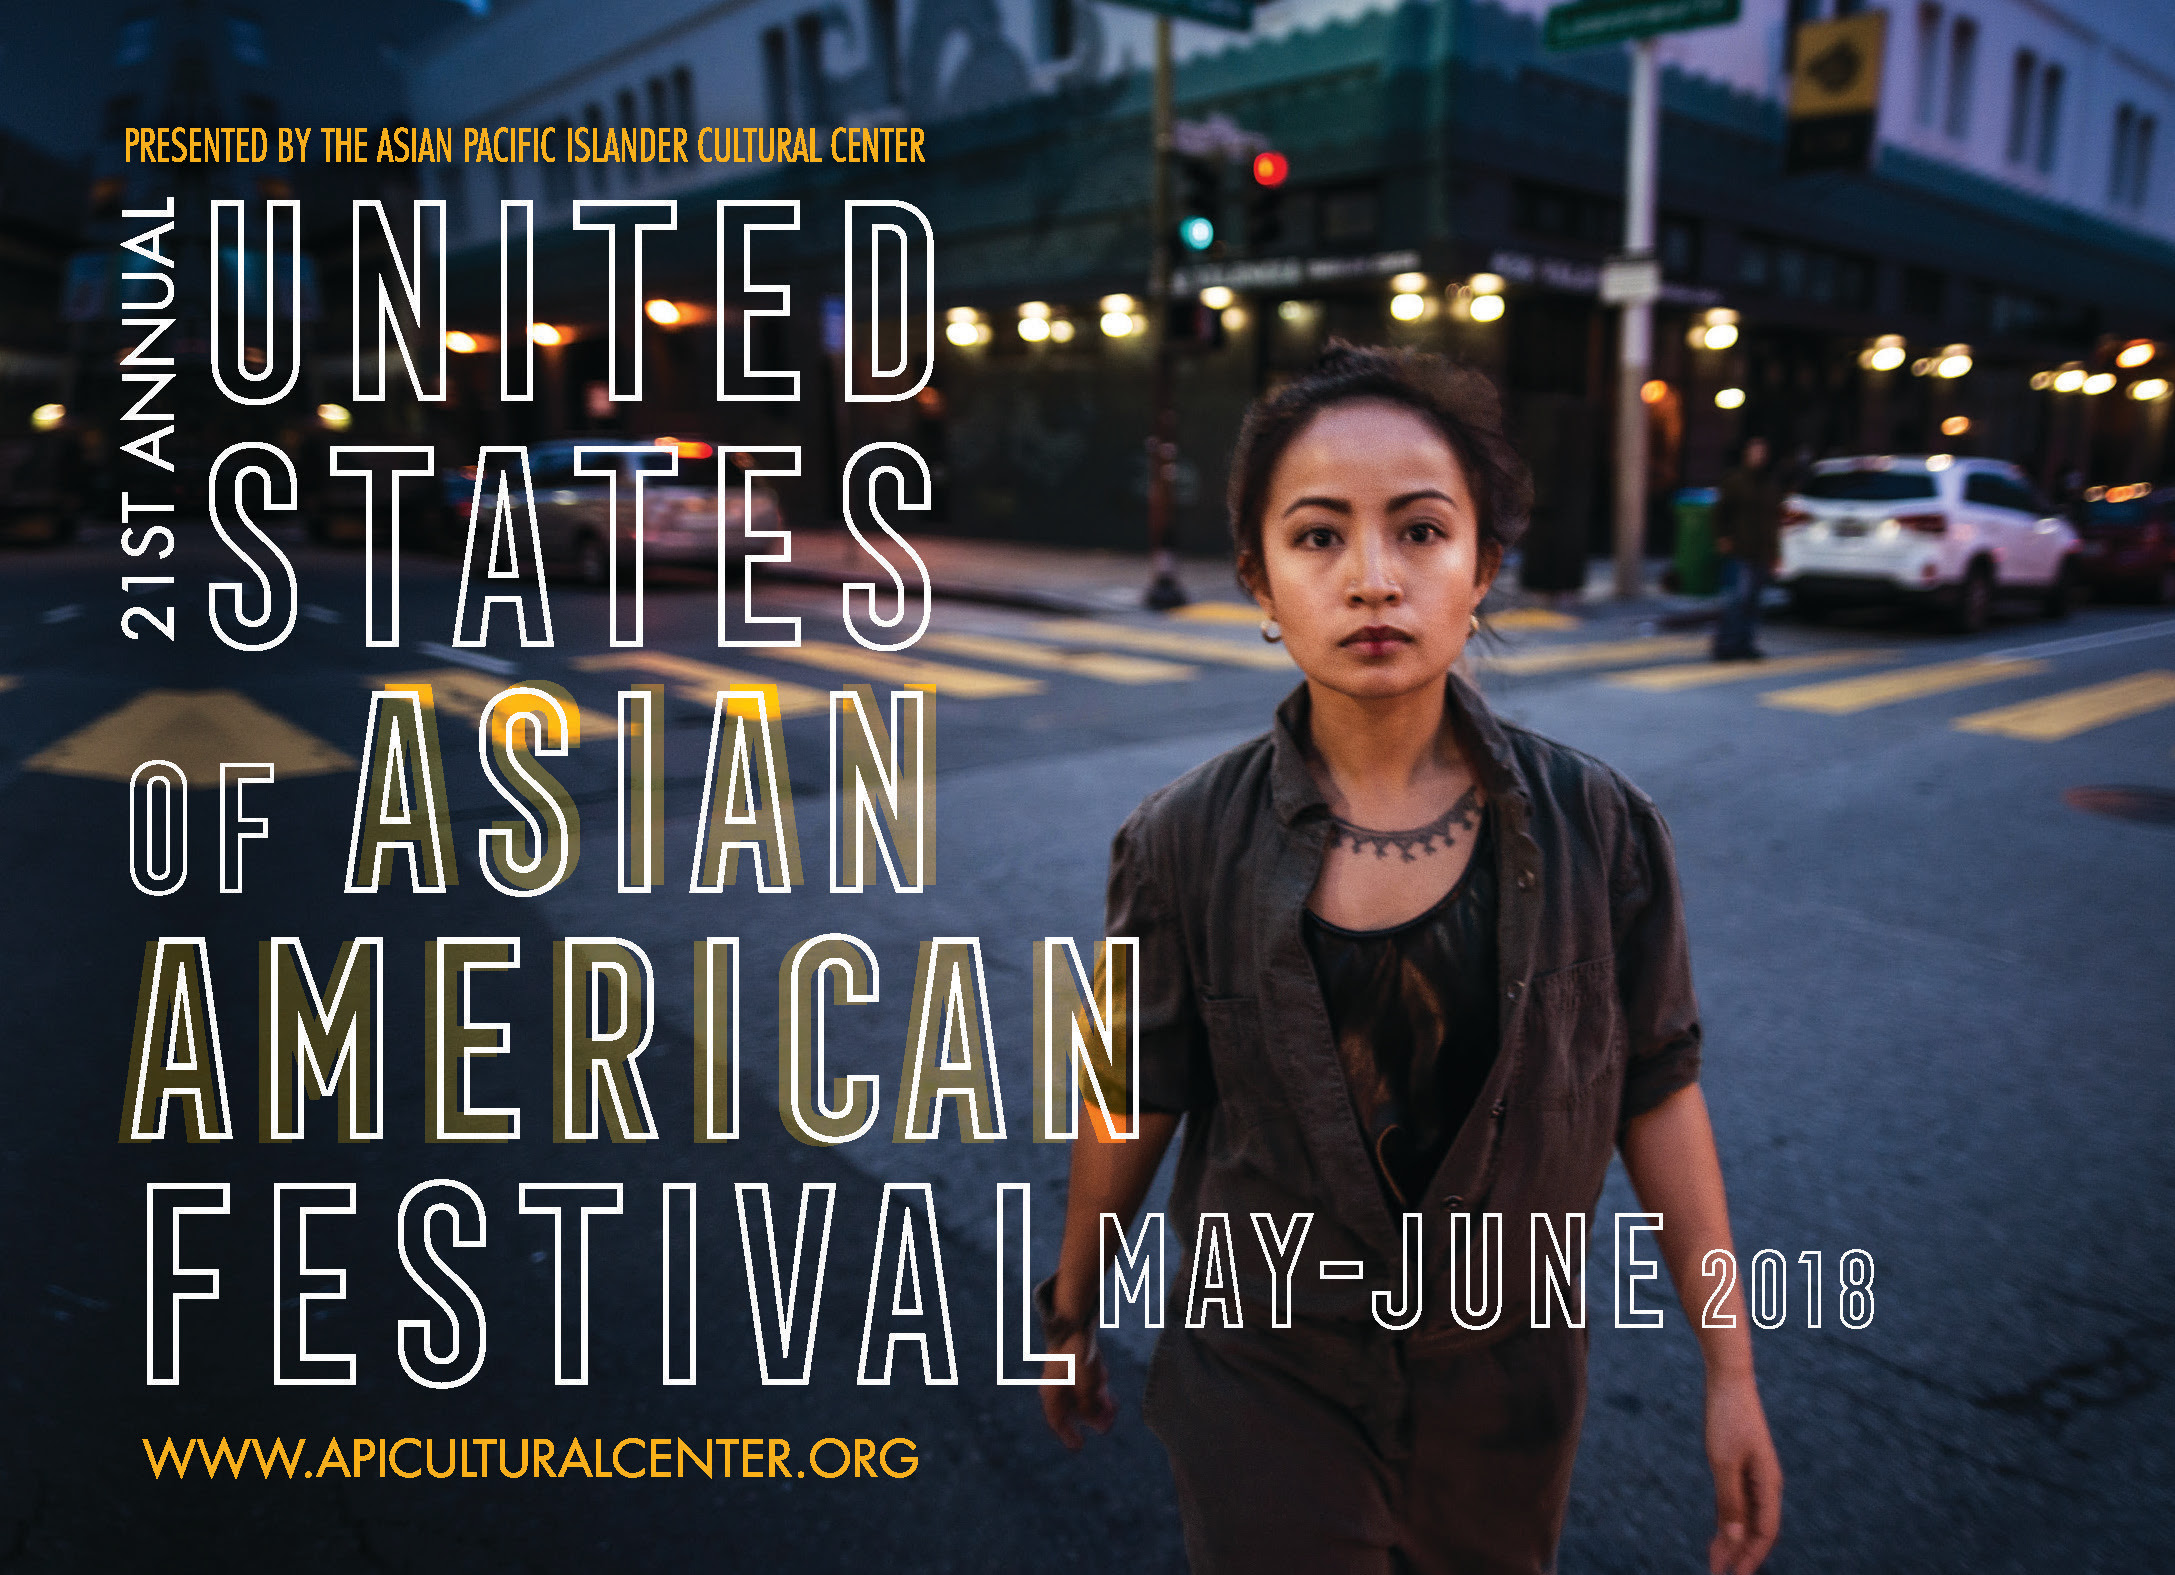 APICC USAA Festival - NOW OPEN!!!Each year, the United States of Asian American Festival (USAAF) presents up to 15 programs